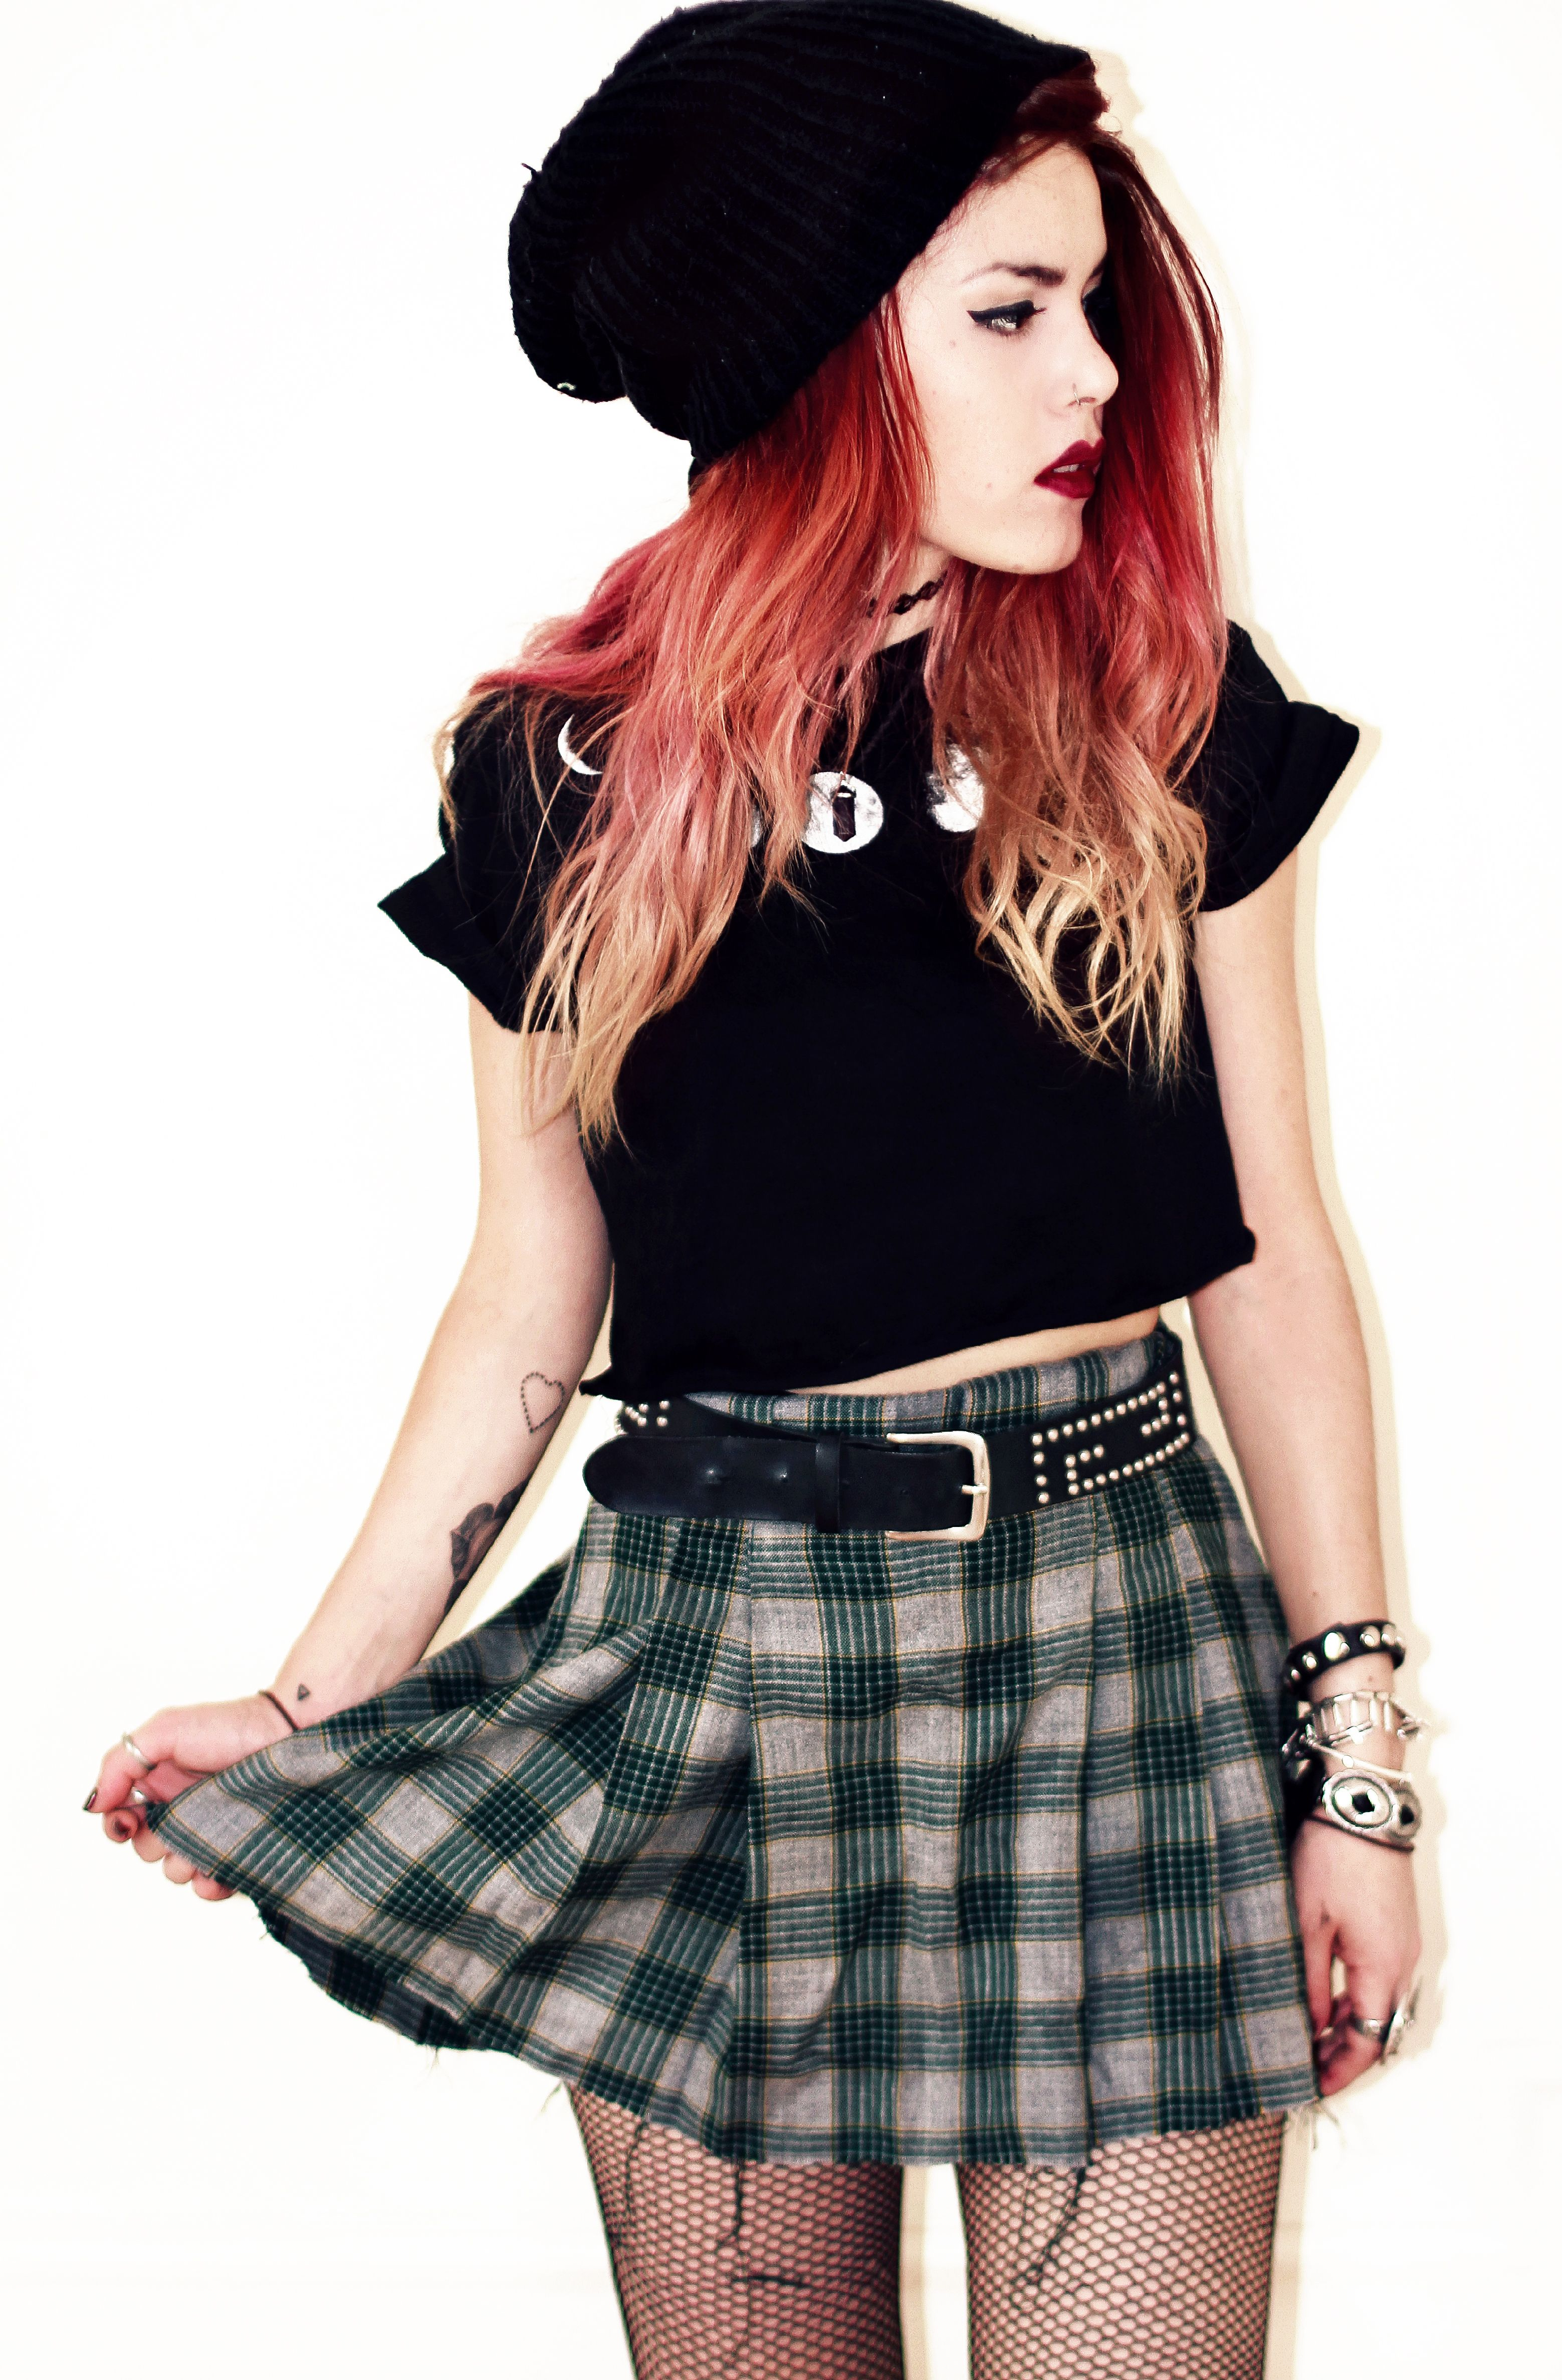 Punk Grunge Tumblr - Recherche Google Http//spotpopfashion.com/avia | GET Spotted ...